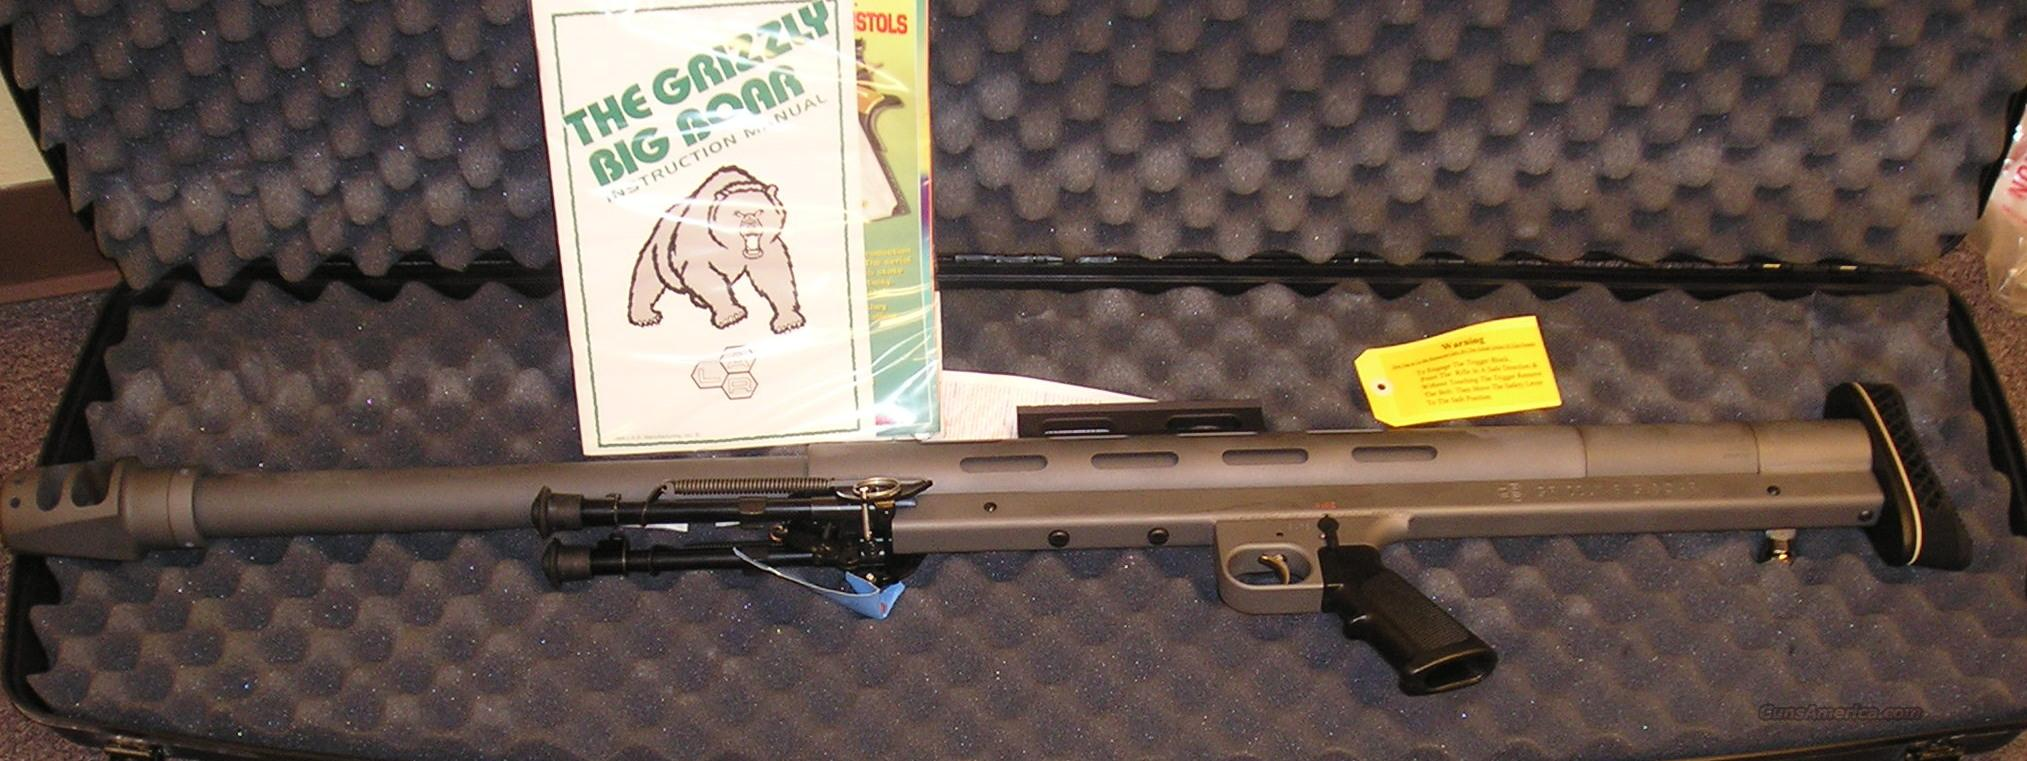 LAR Grizzly 50 BMG  Guns > Rifles > LAR/Grizzly Mfg. Co. Rifles